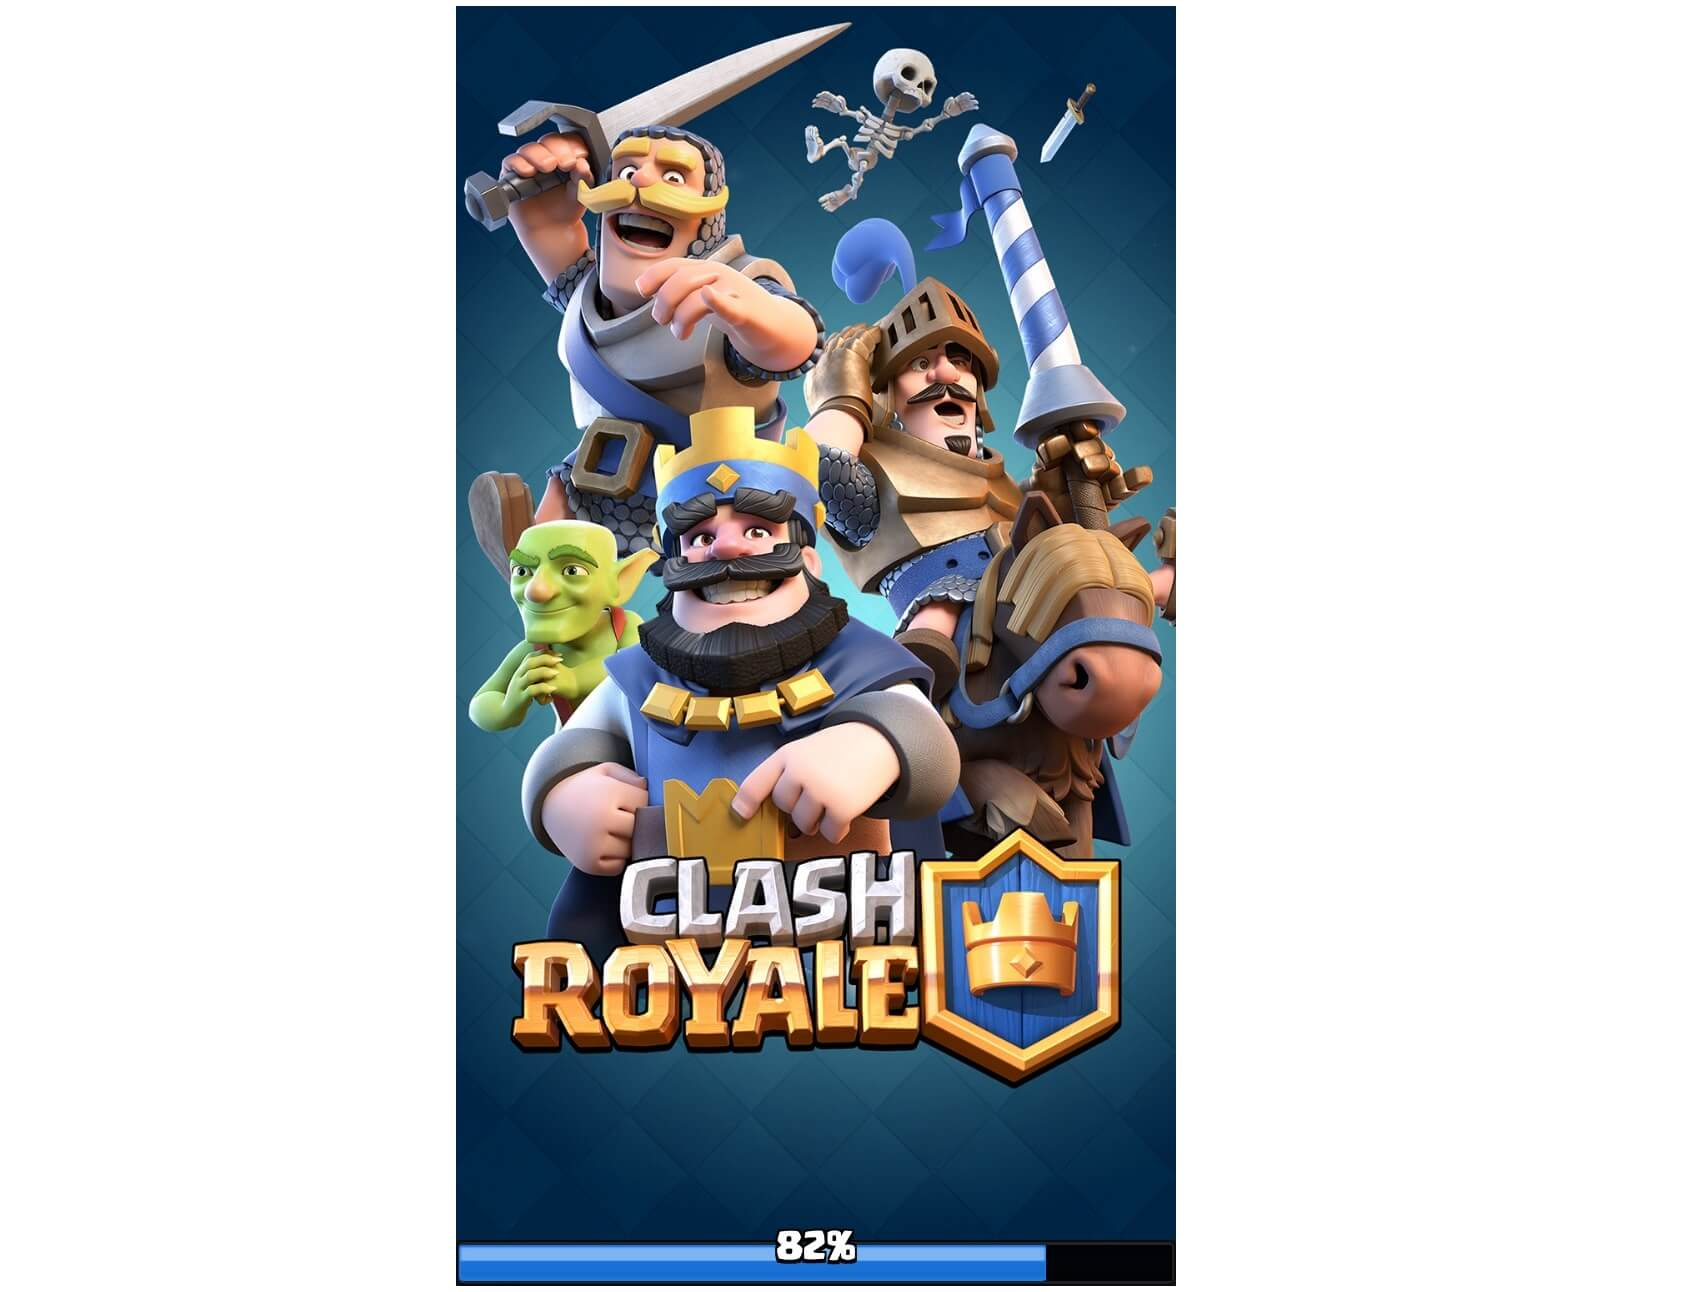 How to Fix Common Clash Royale Errors, Issues & Problems